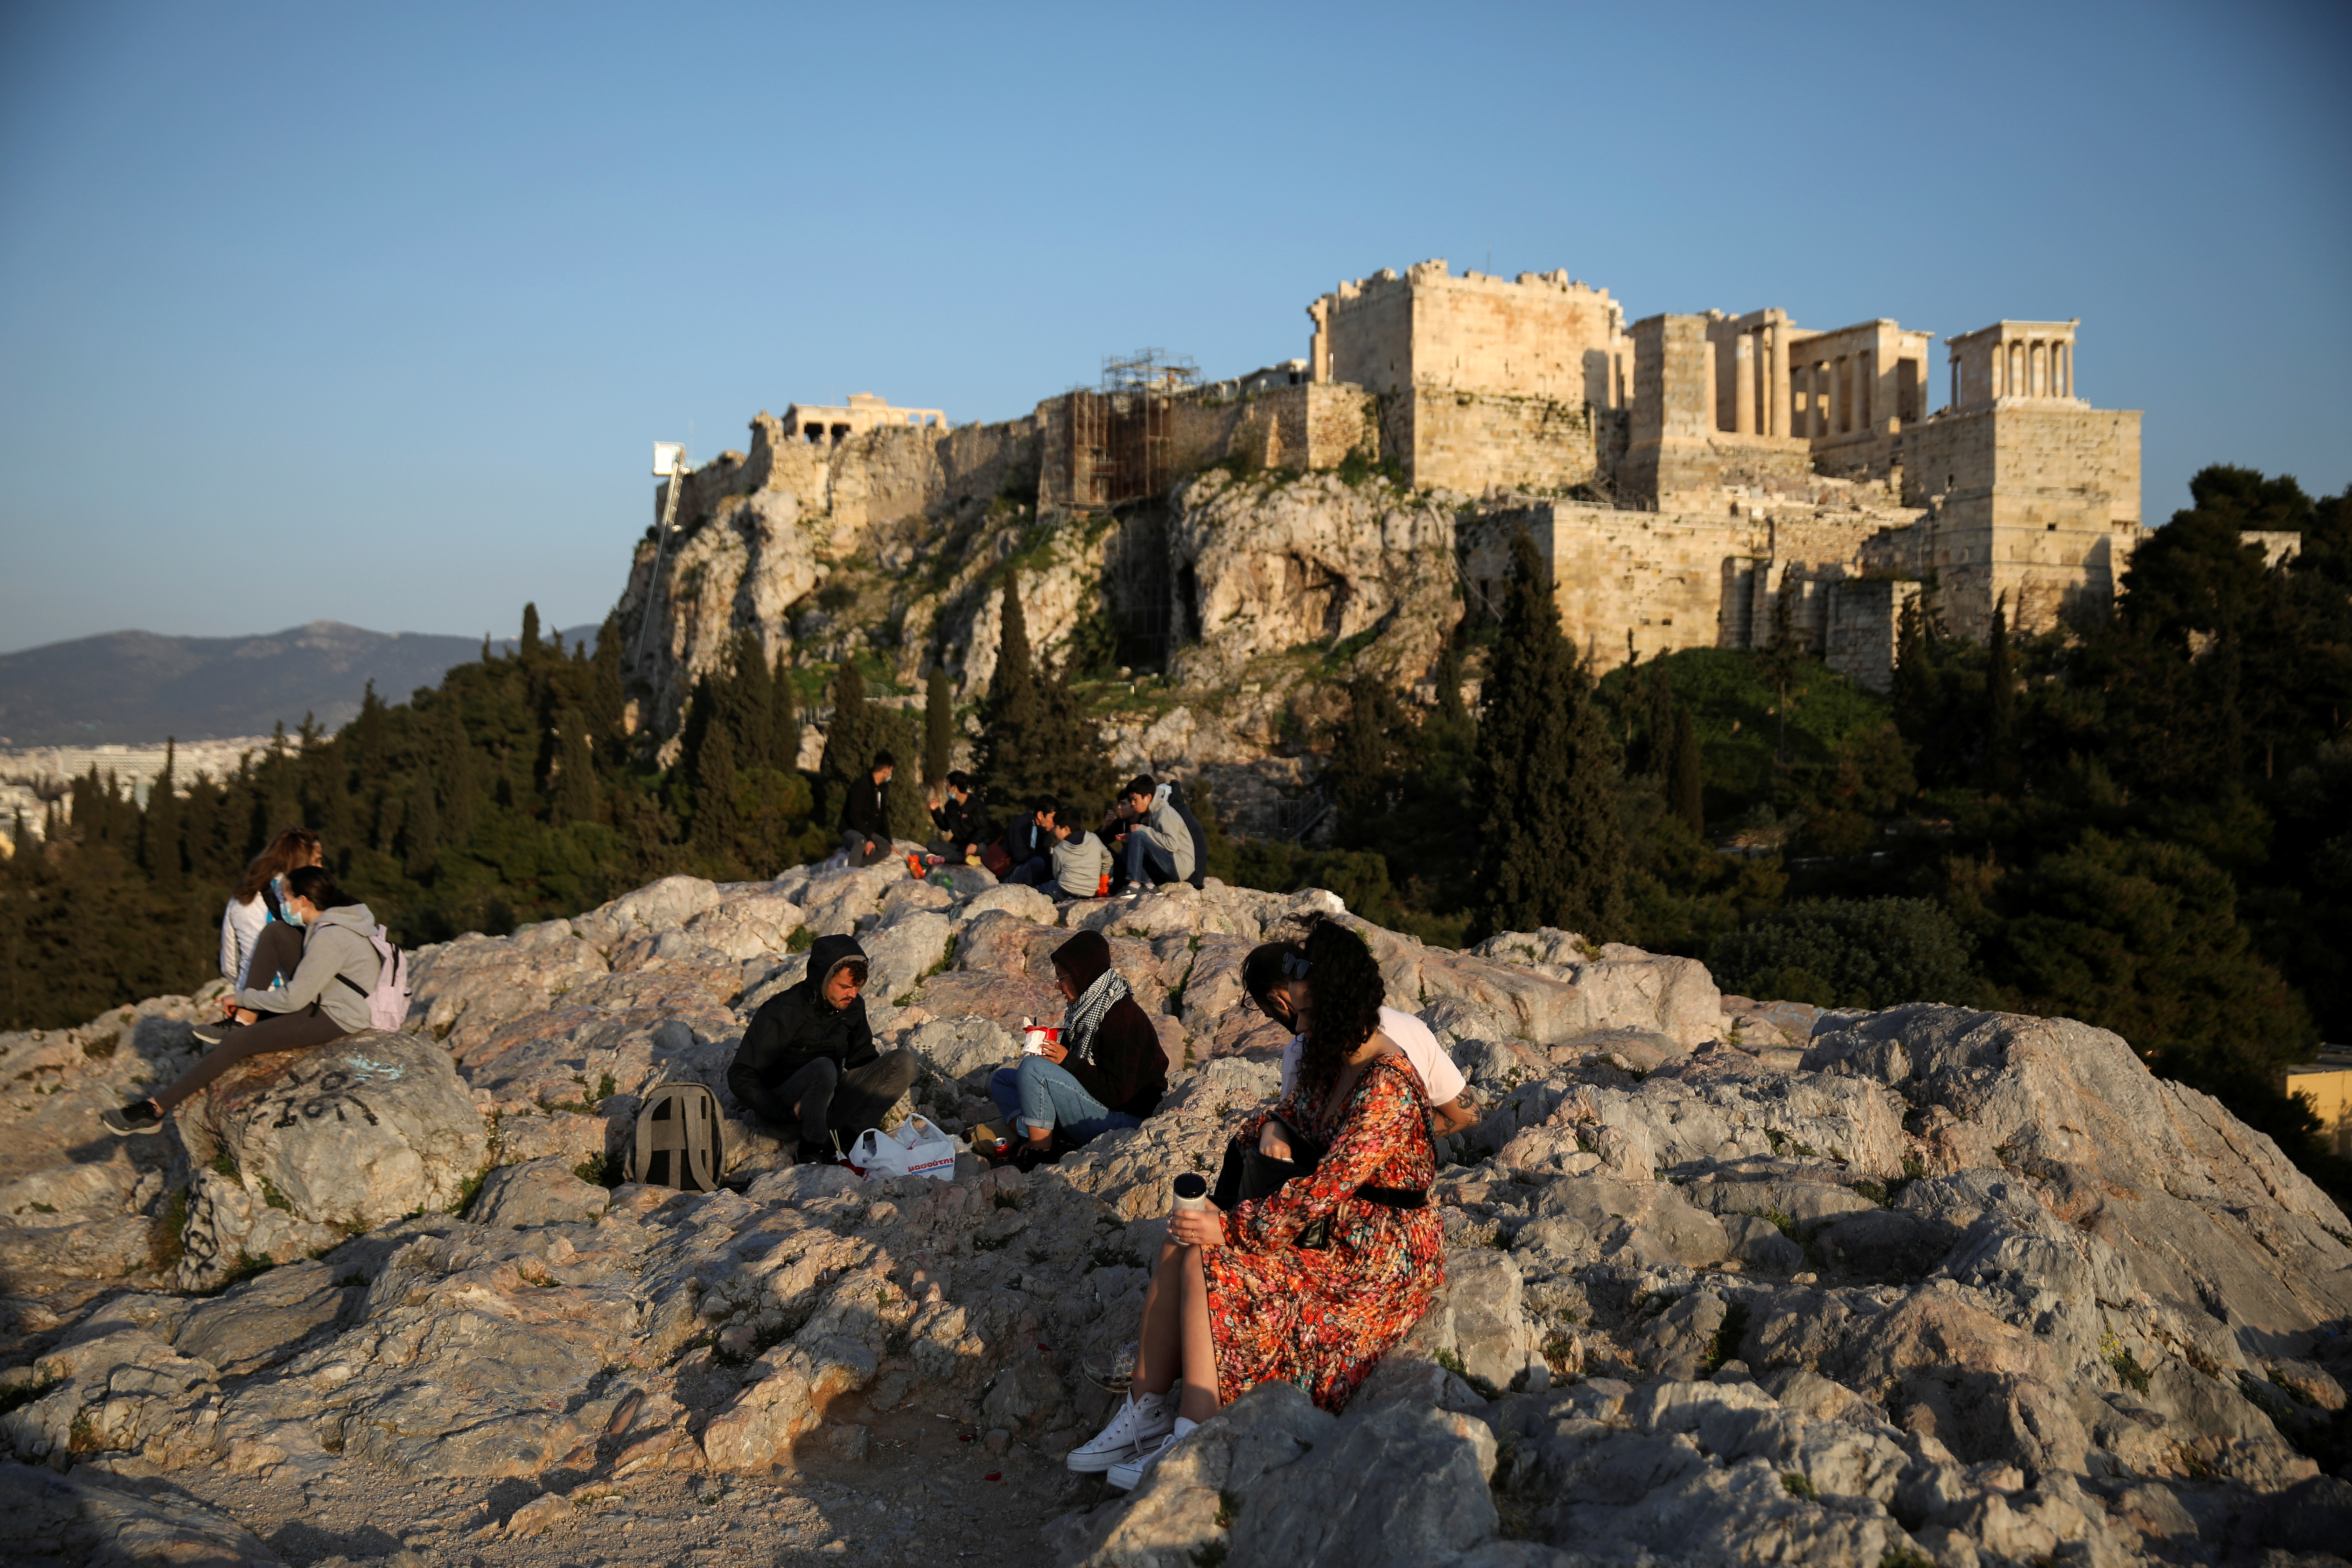 FILE  PHOTO: People visit the Areios Pagos hill, with the Acropolis' Propylaea seen in the background, amid the coronavirus disease (COVID-19) pandemic, in Athens, Greece, March 10, 2021. Picture taken March 10, 2021. REUTERS/Louiza Vradi